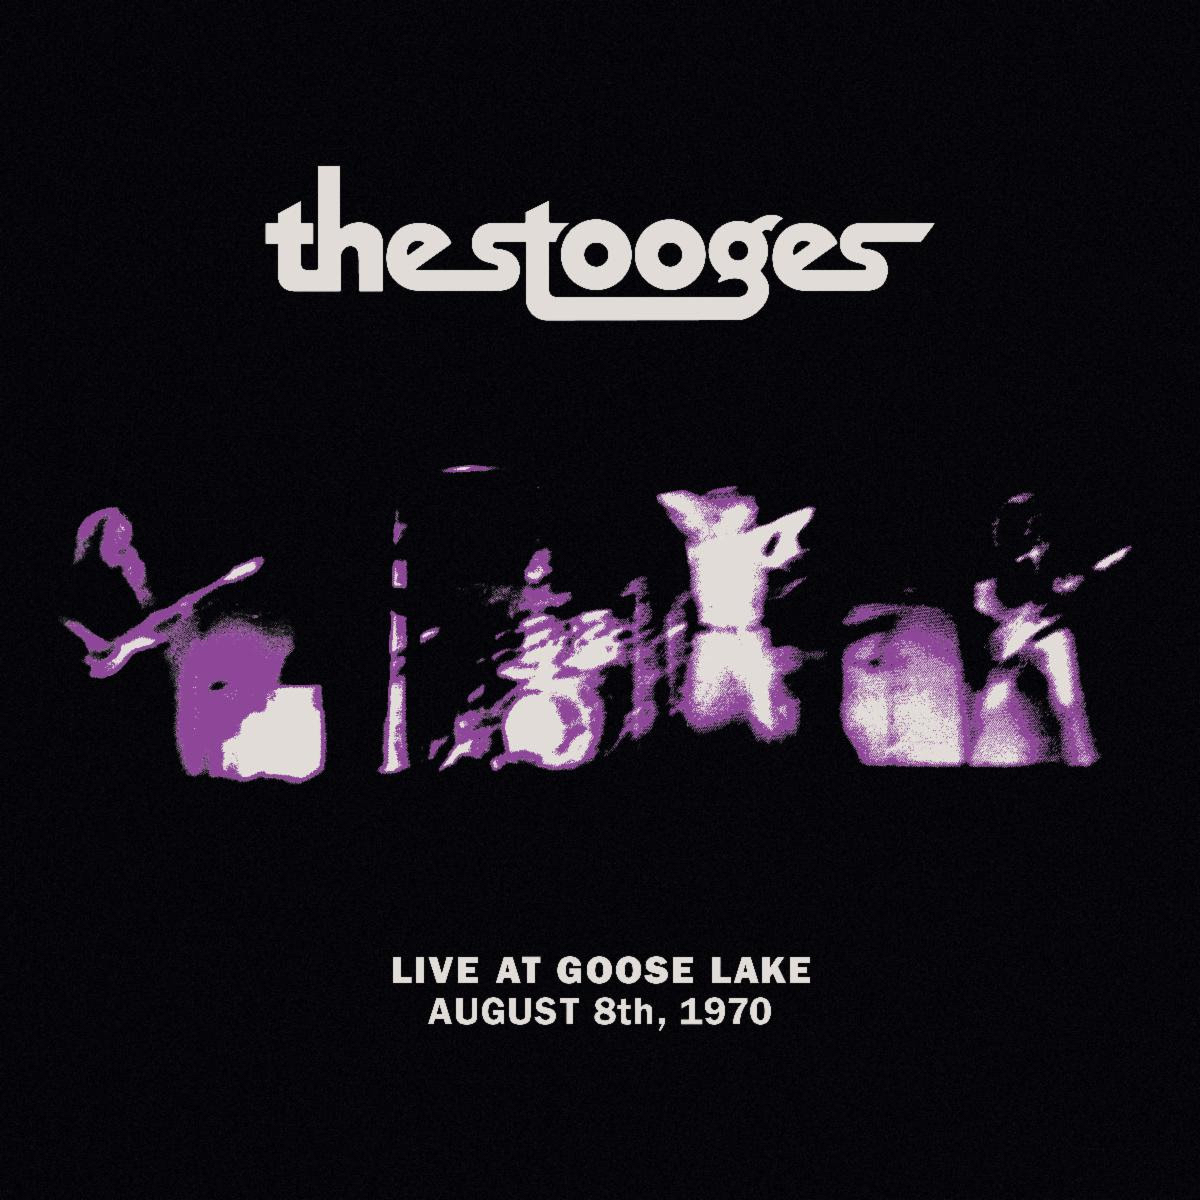 the stooges live at goose lake august 8th 1970 live album third man records final original lineup artwork